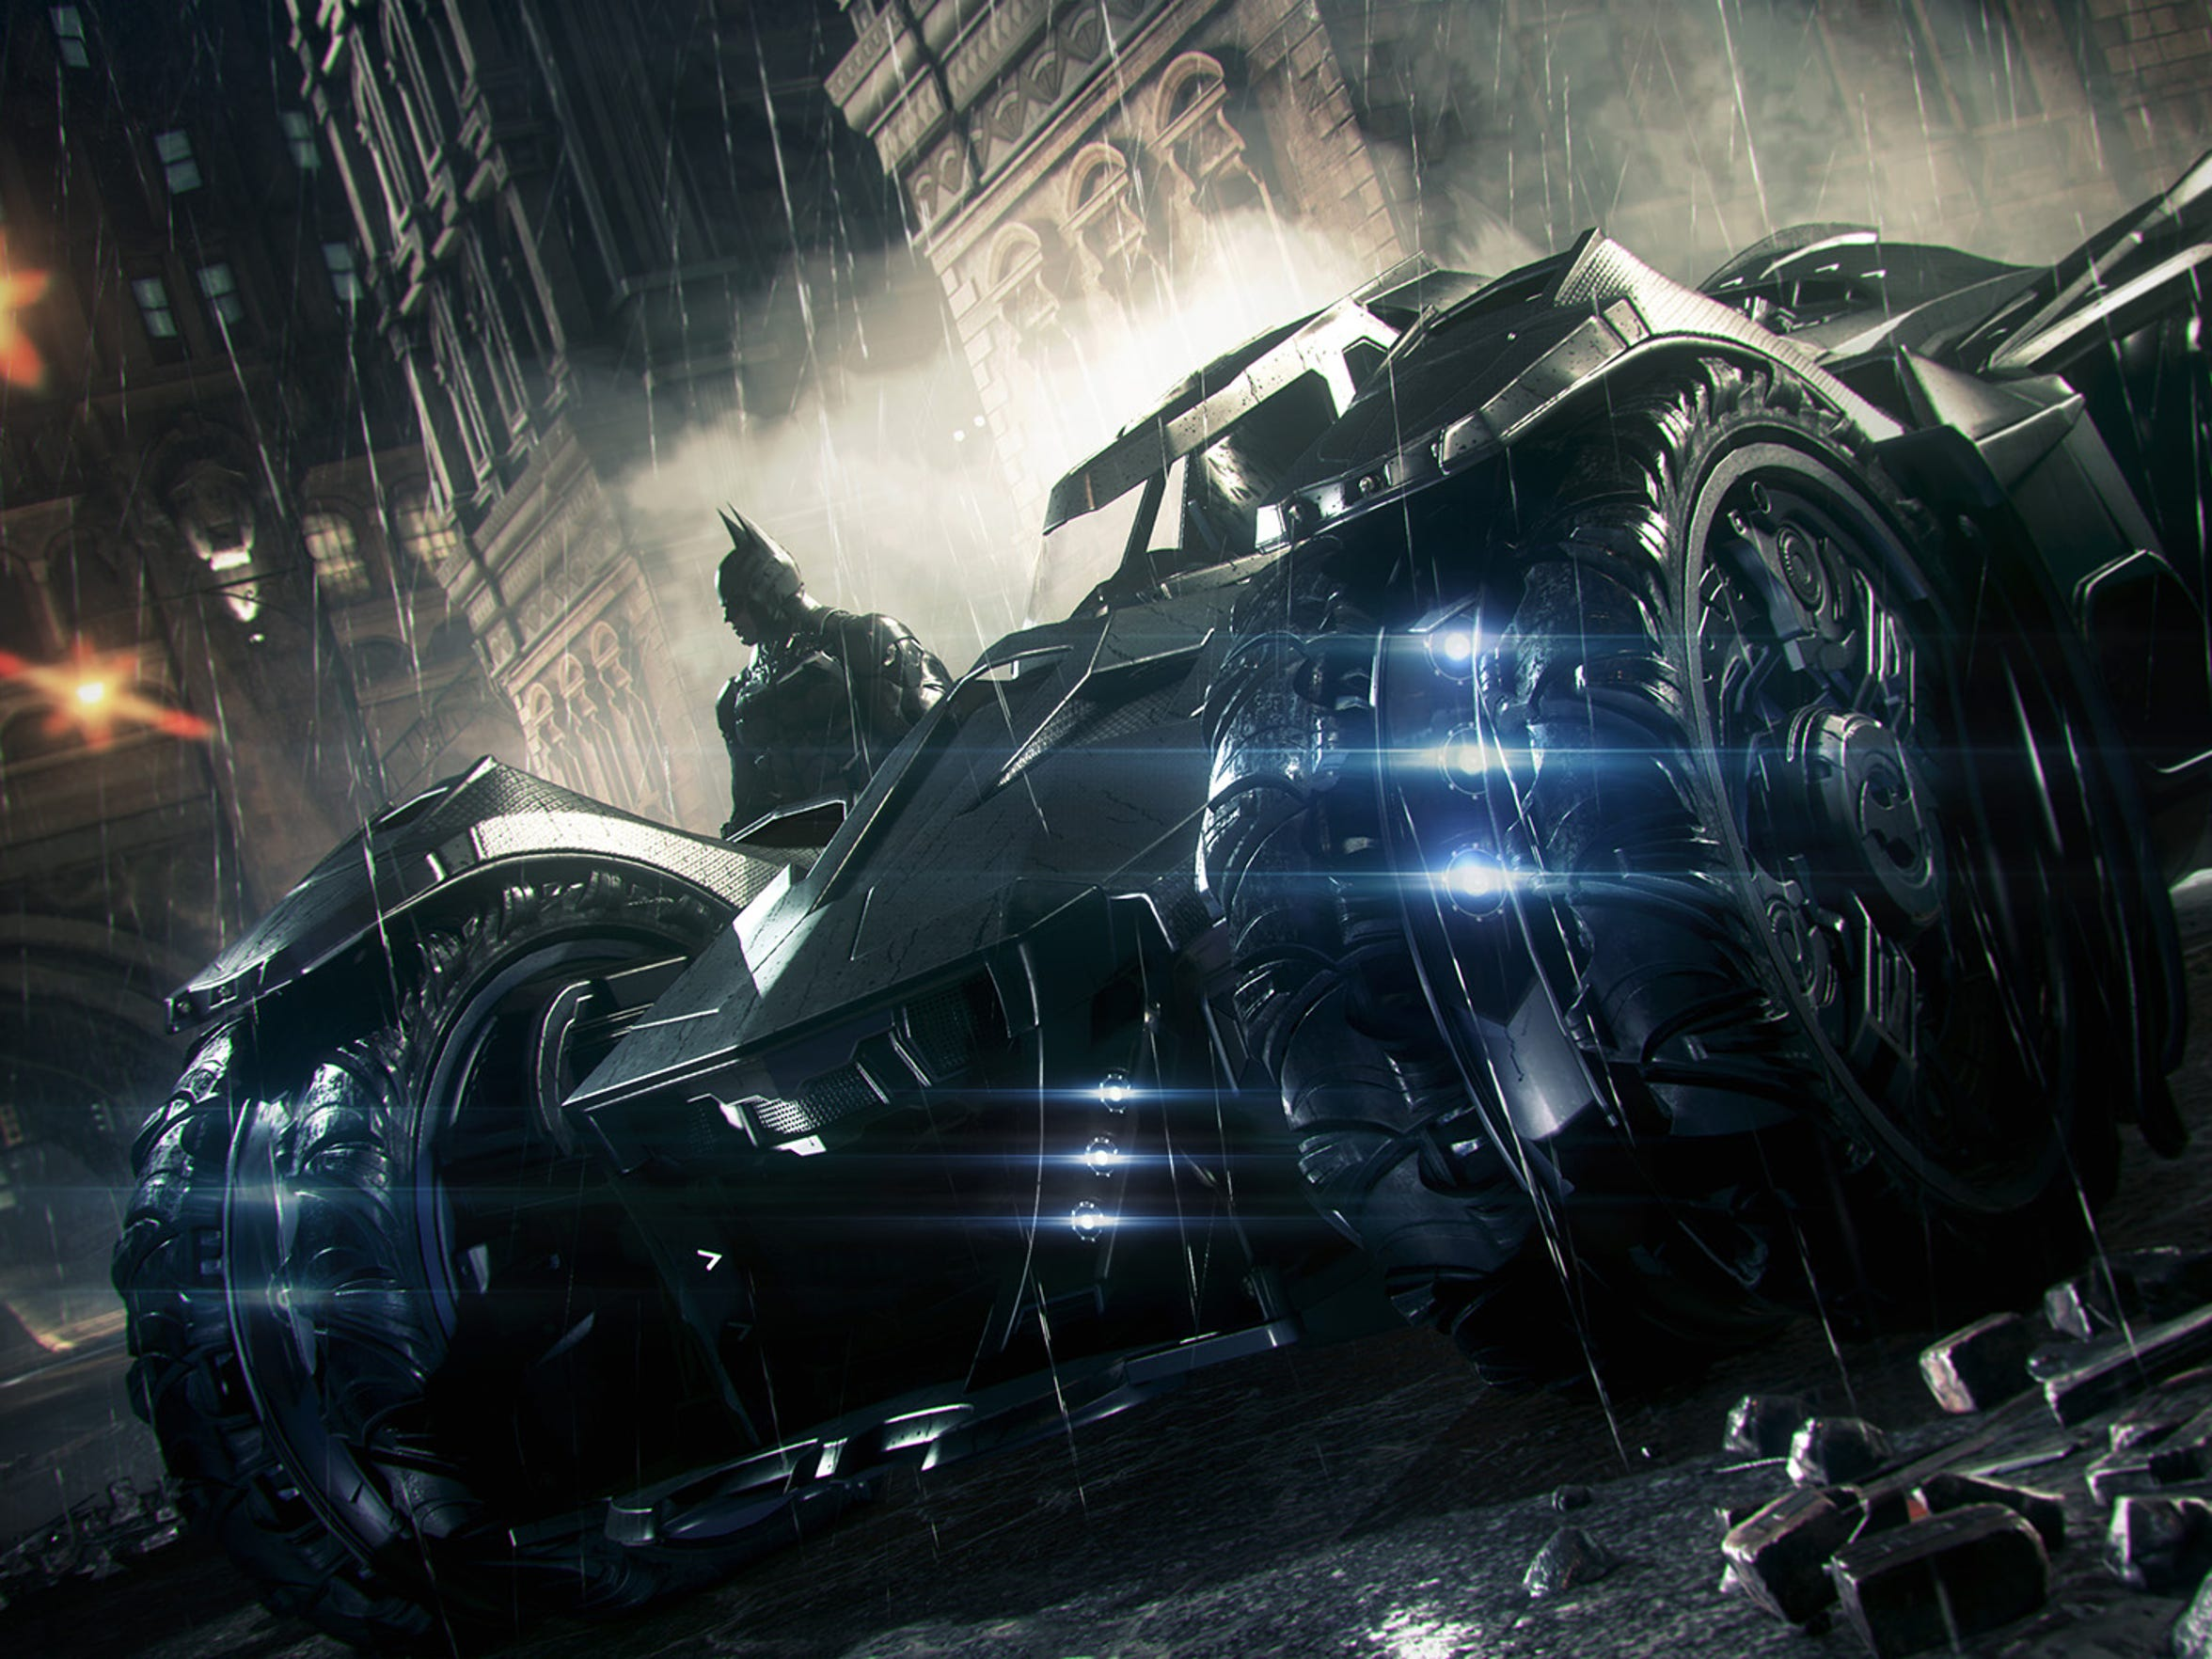 Be ready to see a lot of the new souped-up Batmobile